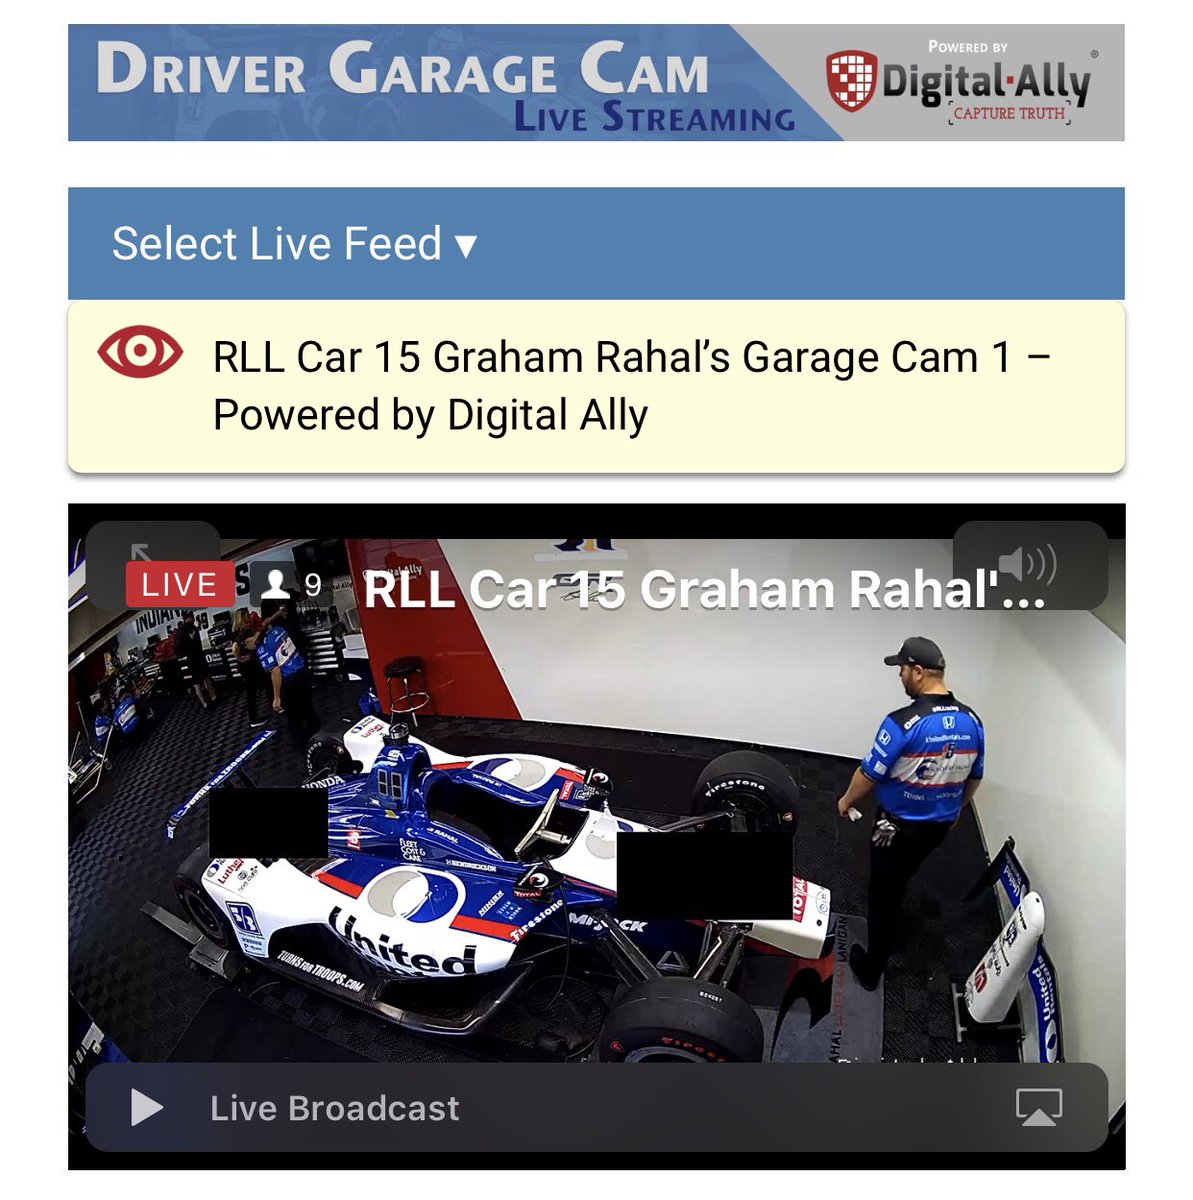 After an intense day yesterday, our team is now able to switch focus to preparing the race cars for the biggest race of the year. Watch from the first ever LIVE team garage camera via @DigitalAllyInc on our website. MORE: tinyurl.com/y5669es5 #indy500 | @IMS